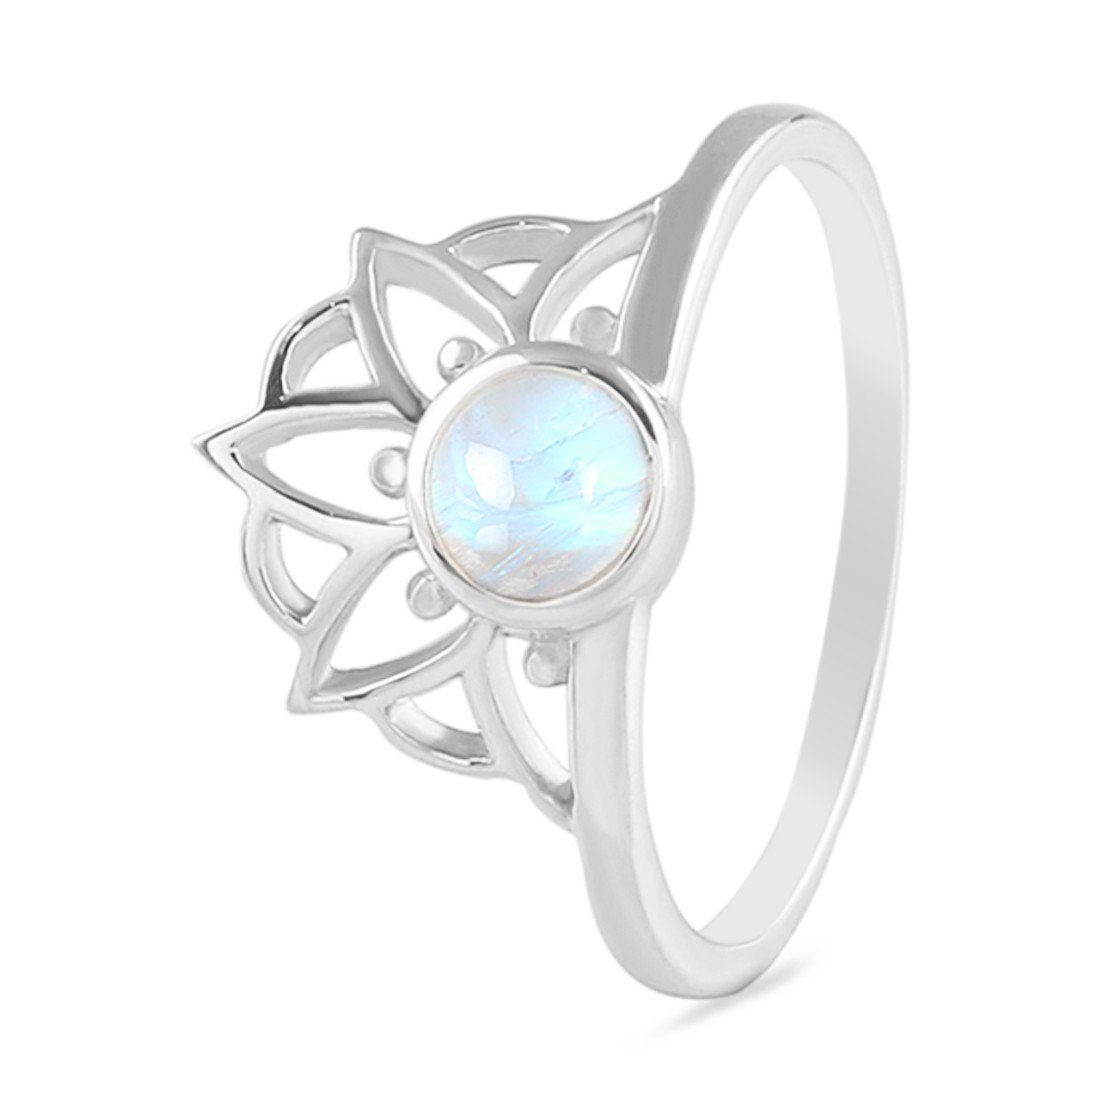 Moonstone Ring-Floral Highness Moonstone Ring 925 SILVER & MOONSTONE